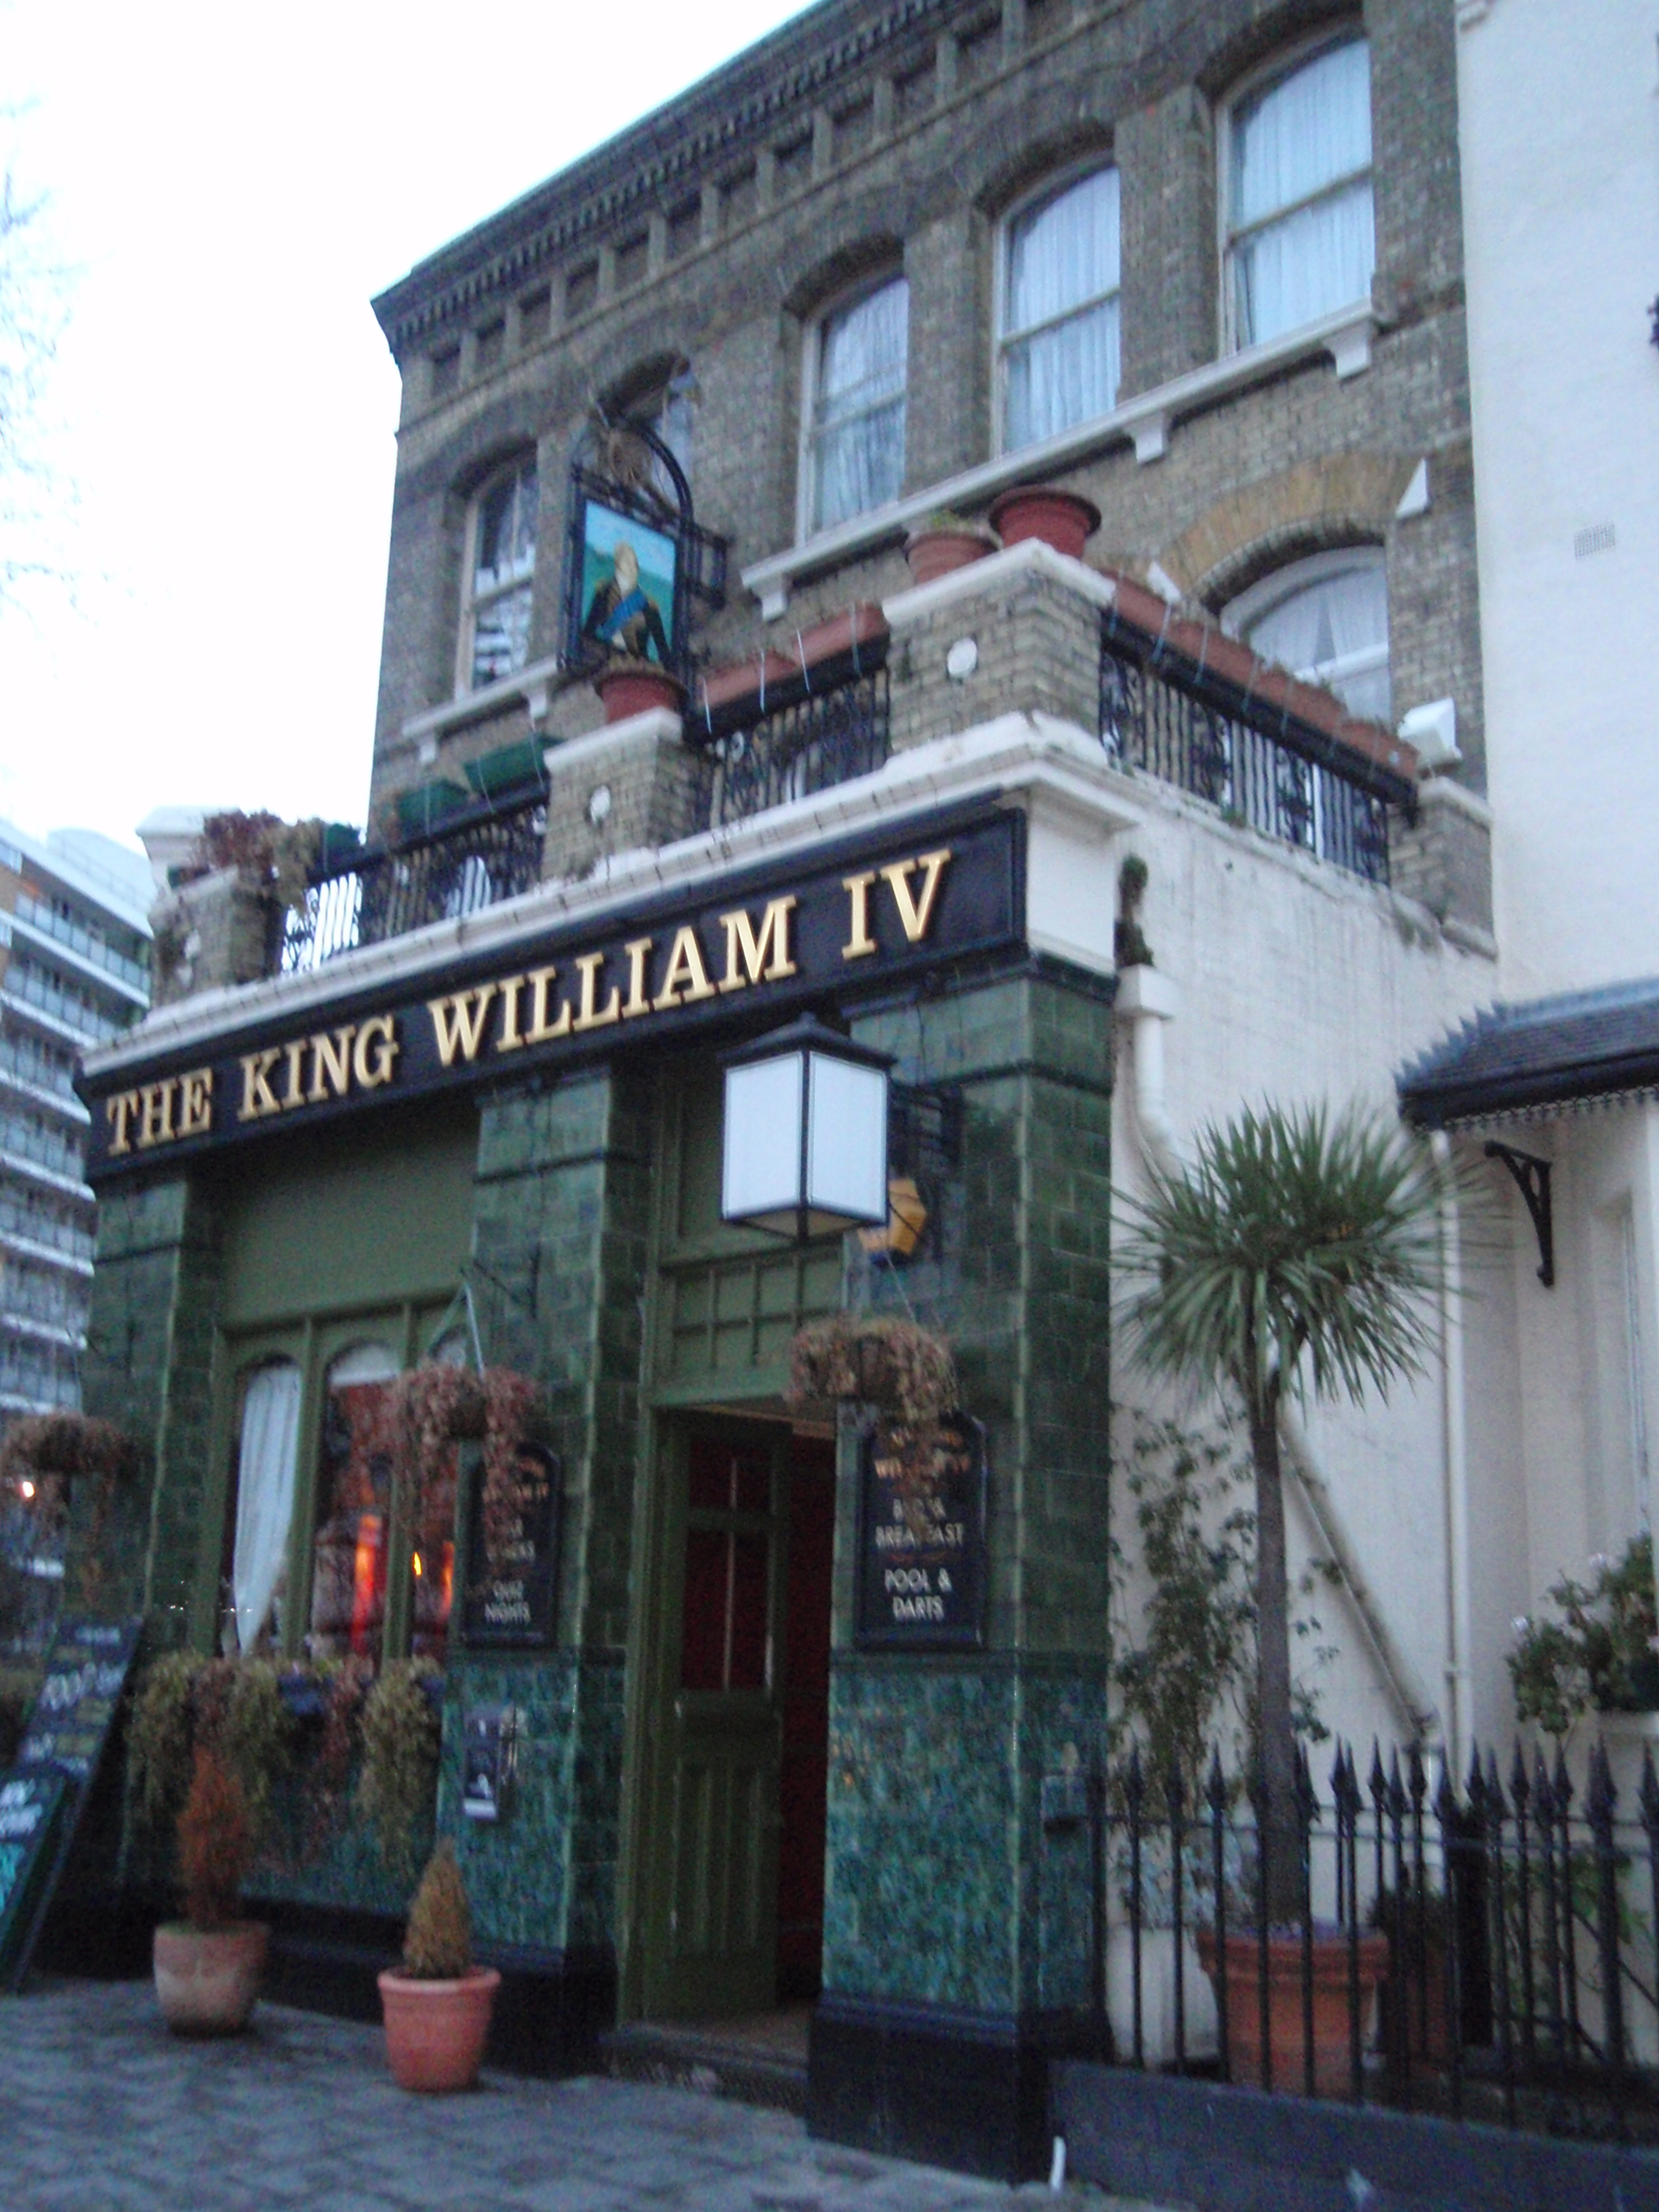 King William IV